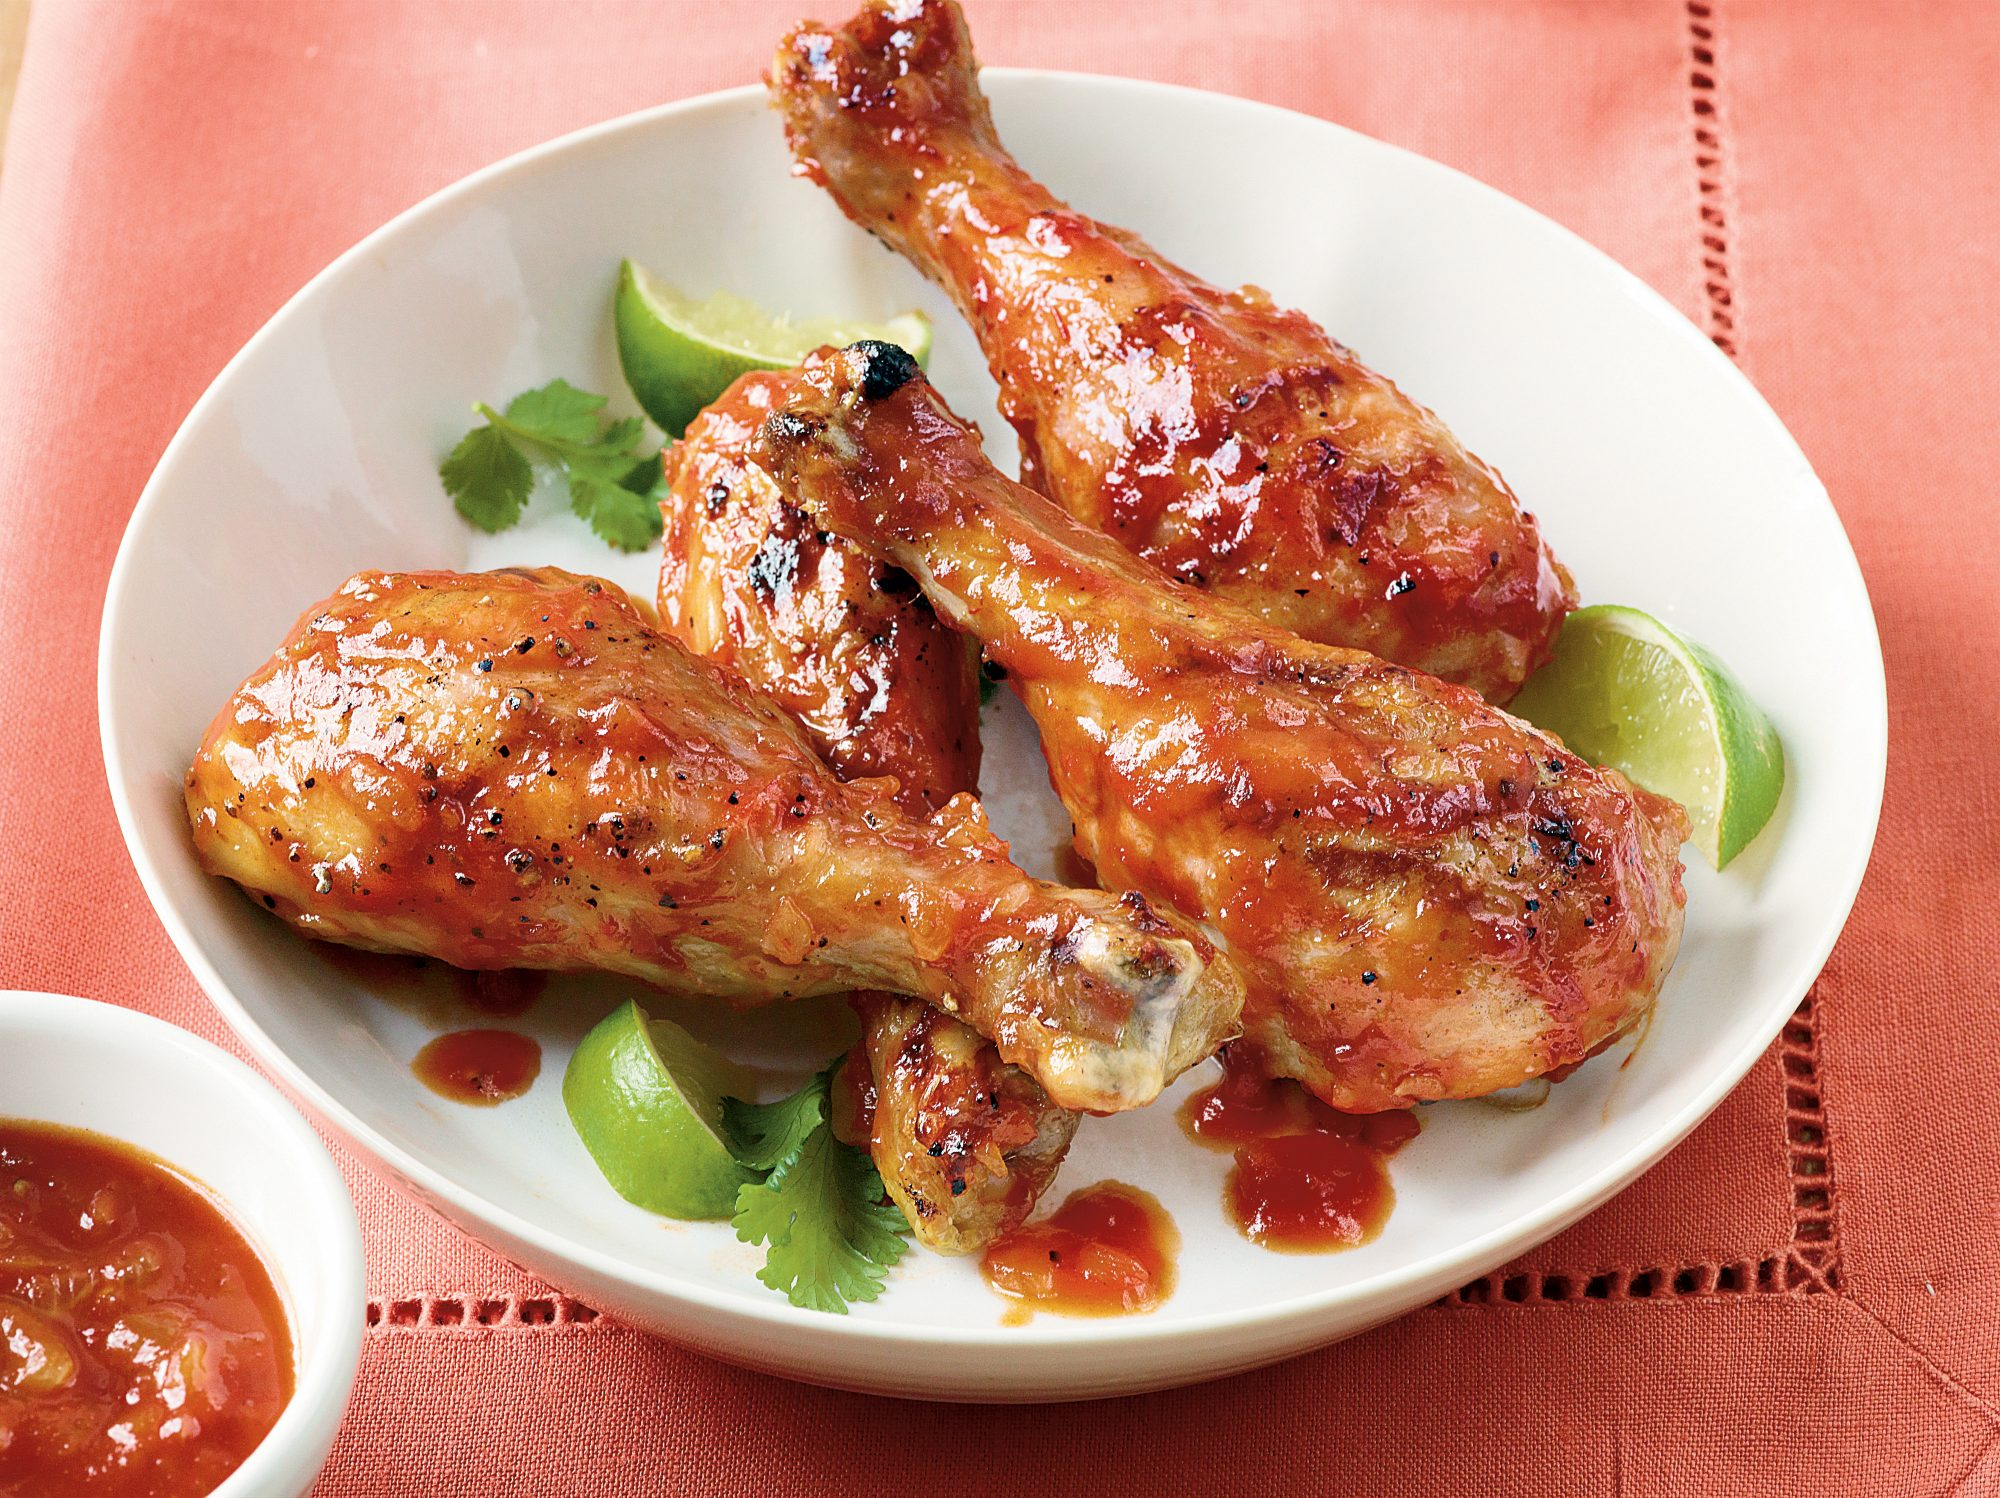 Spicy Honey-Lime Barbecue Sauce